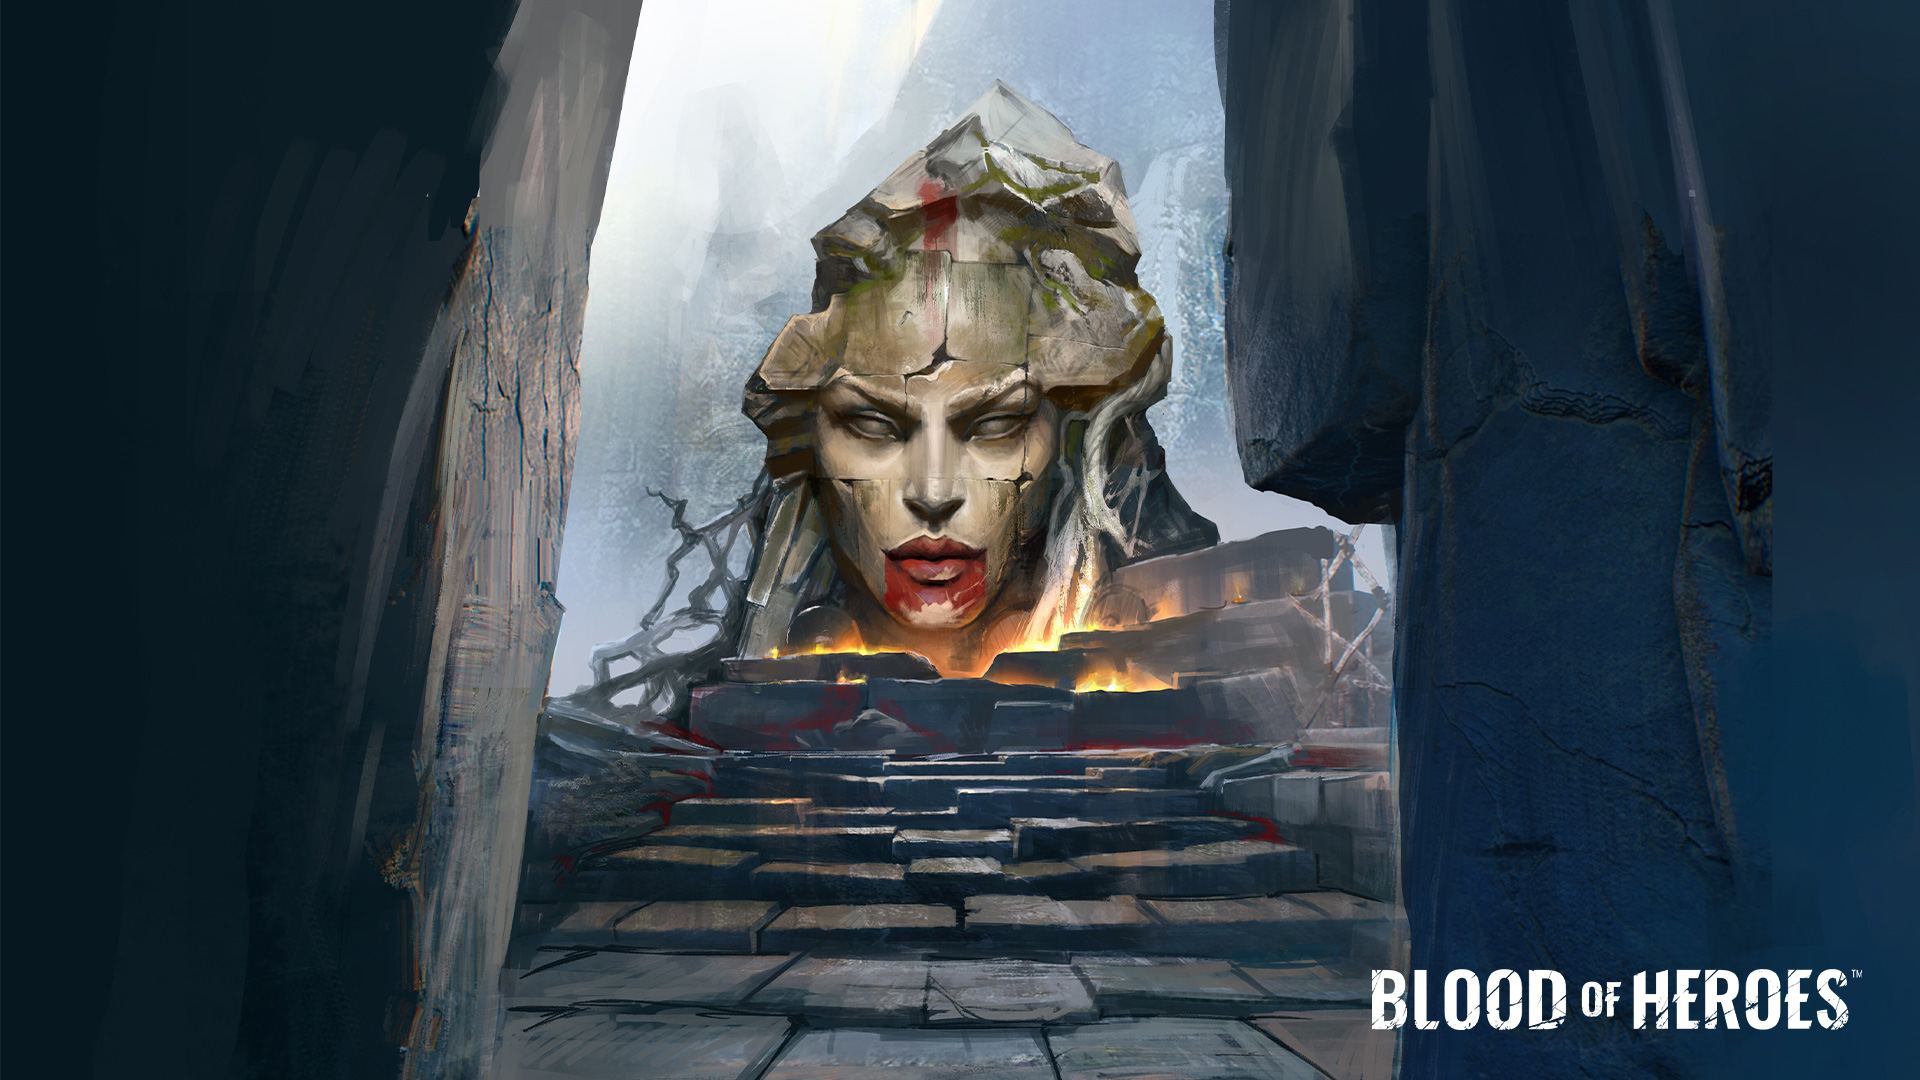 Blood of Heroes Concept Art